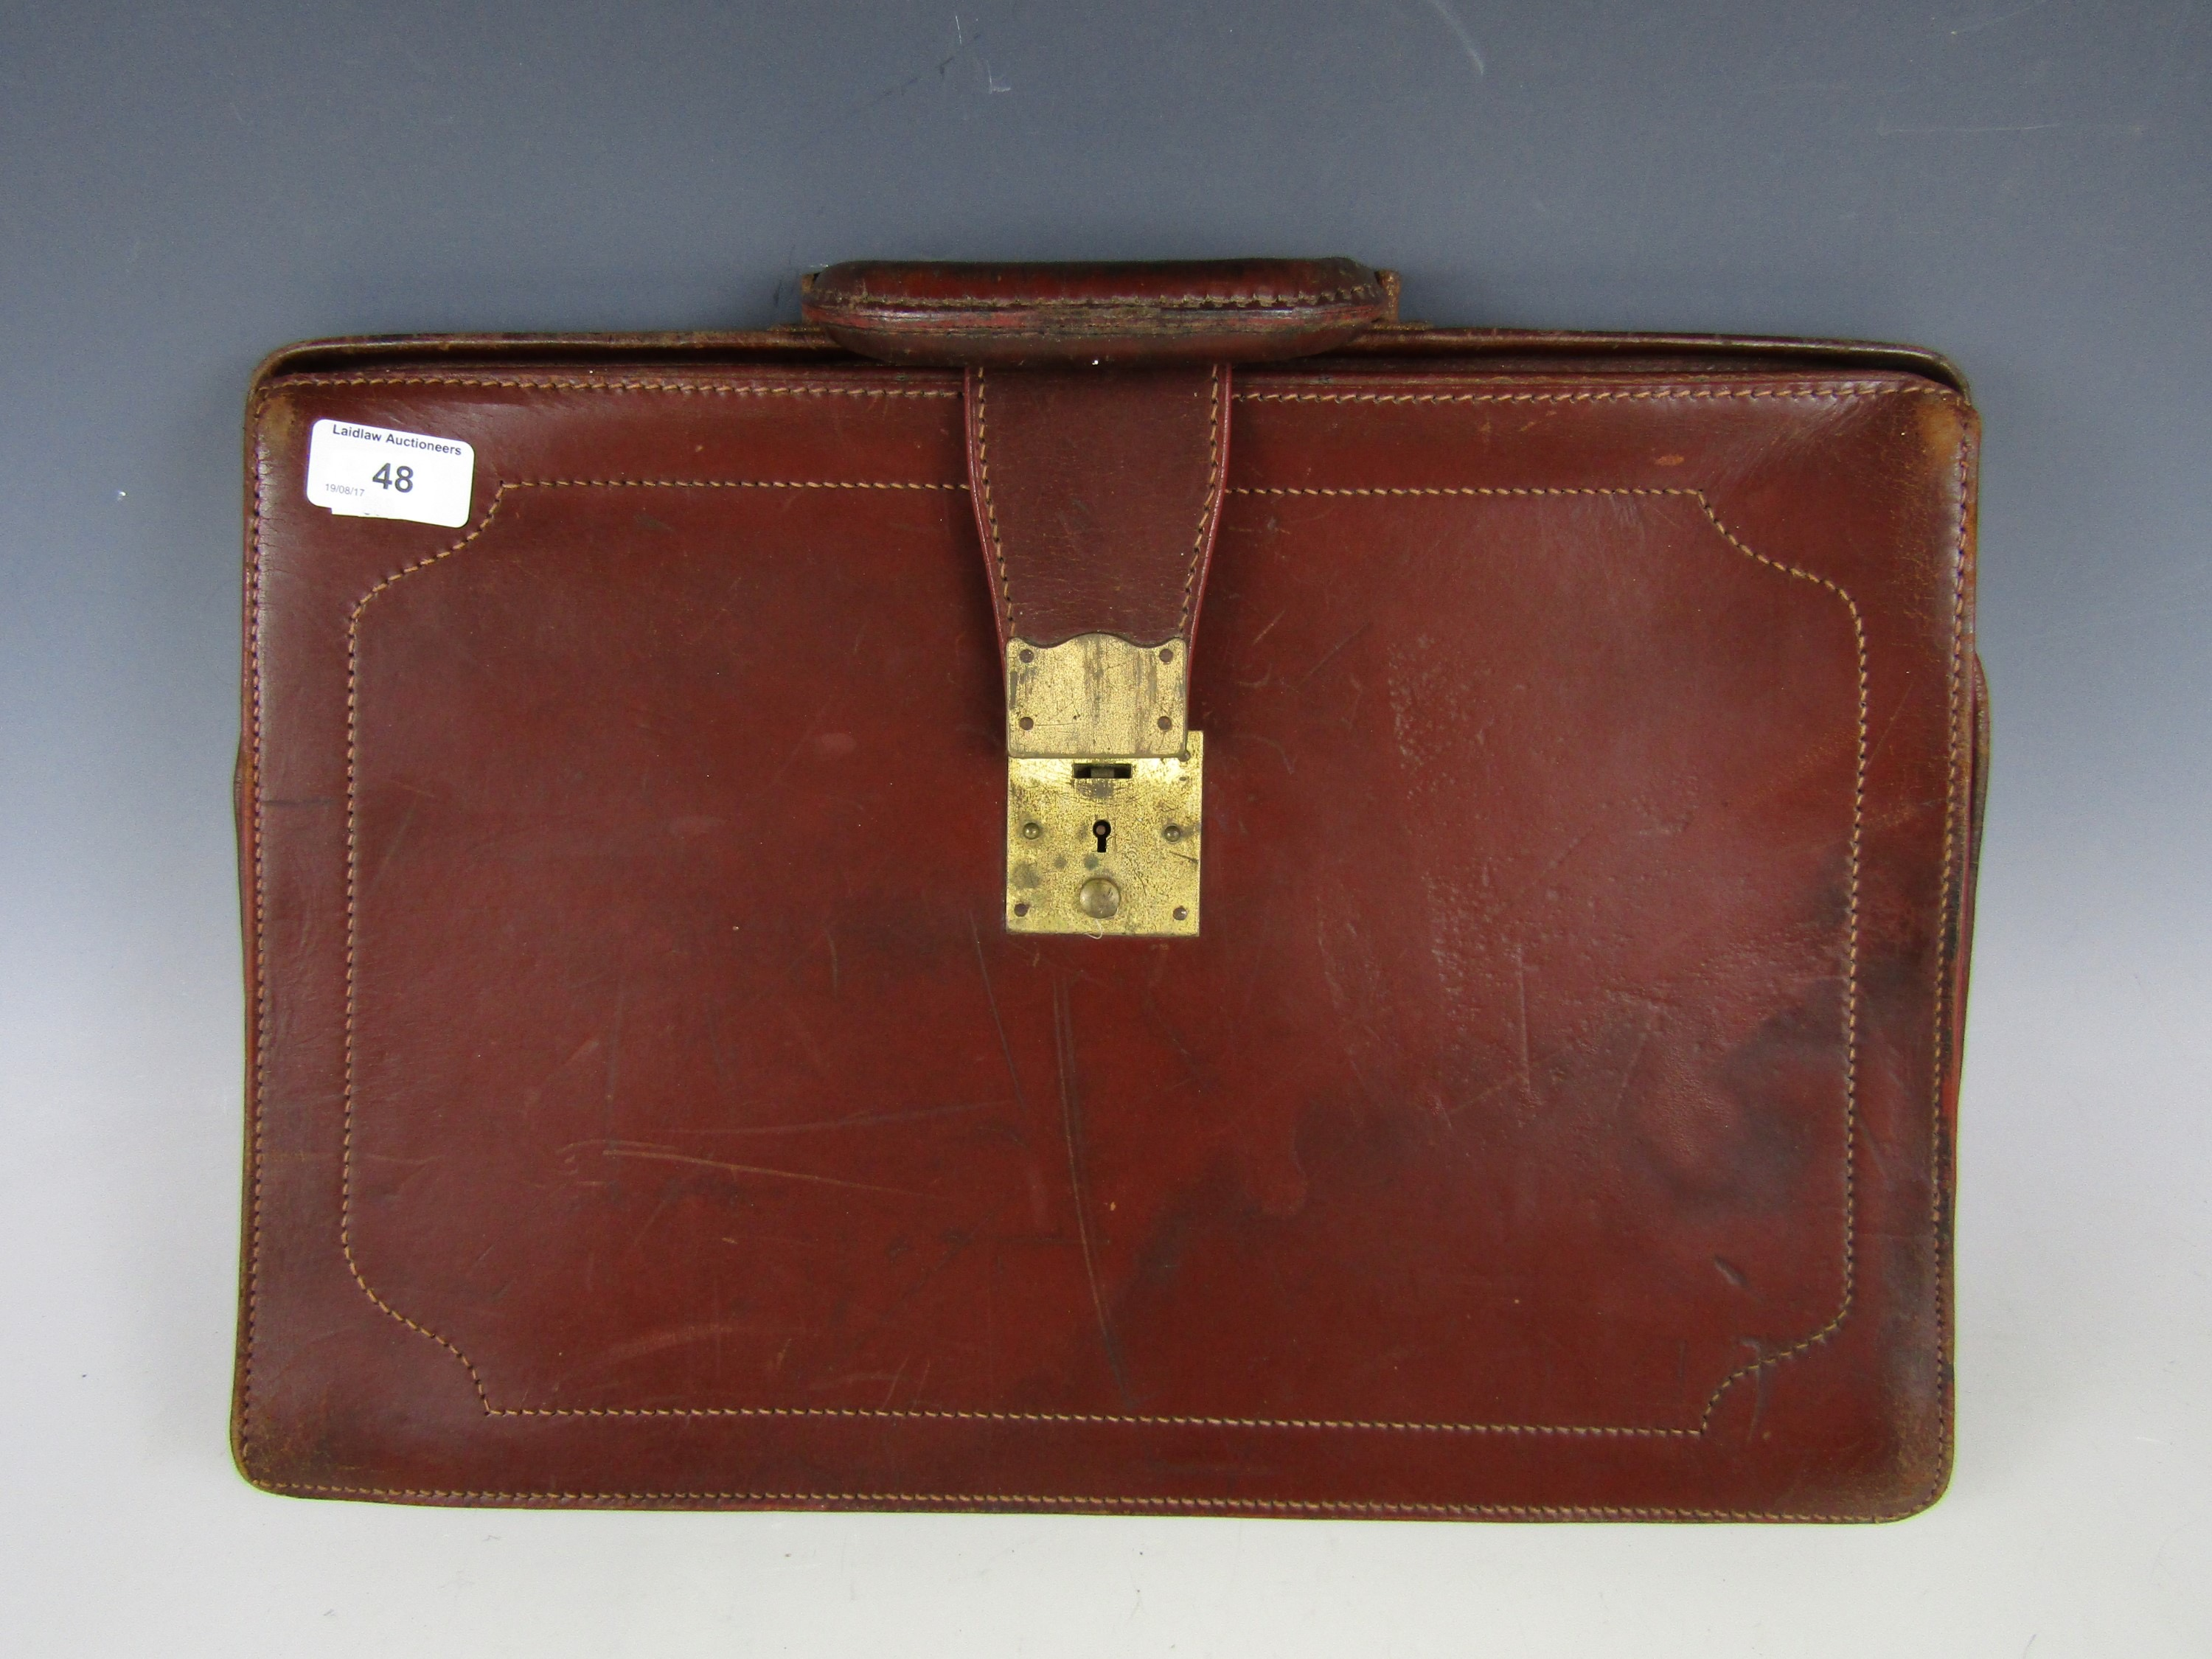 Lot 48 - A vintage leather briefcase